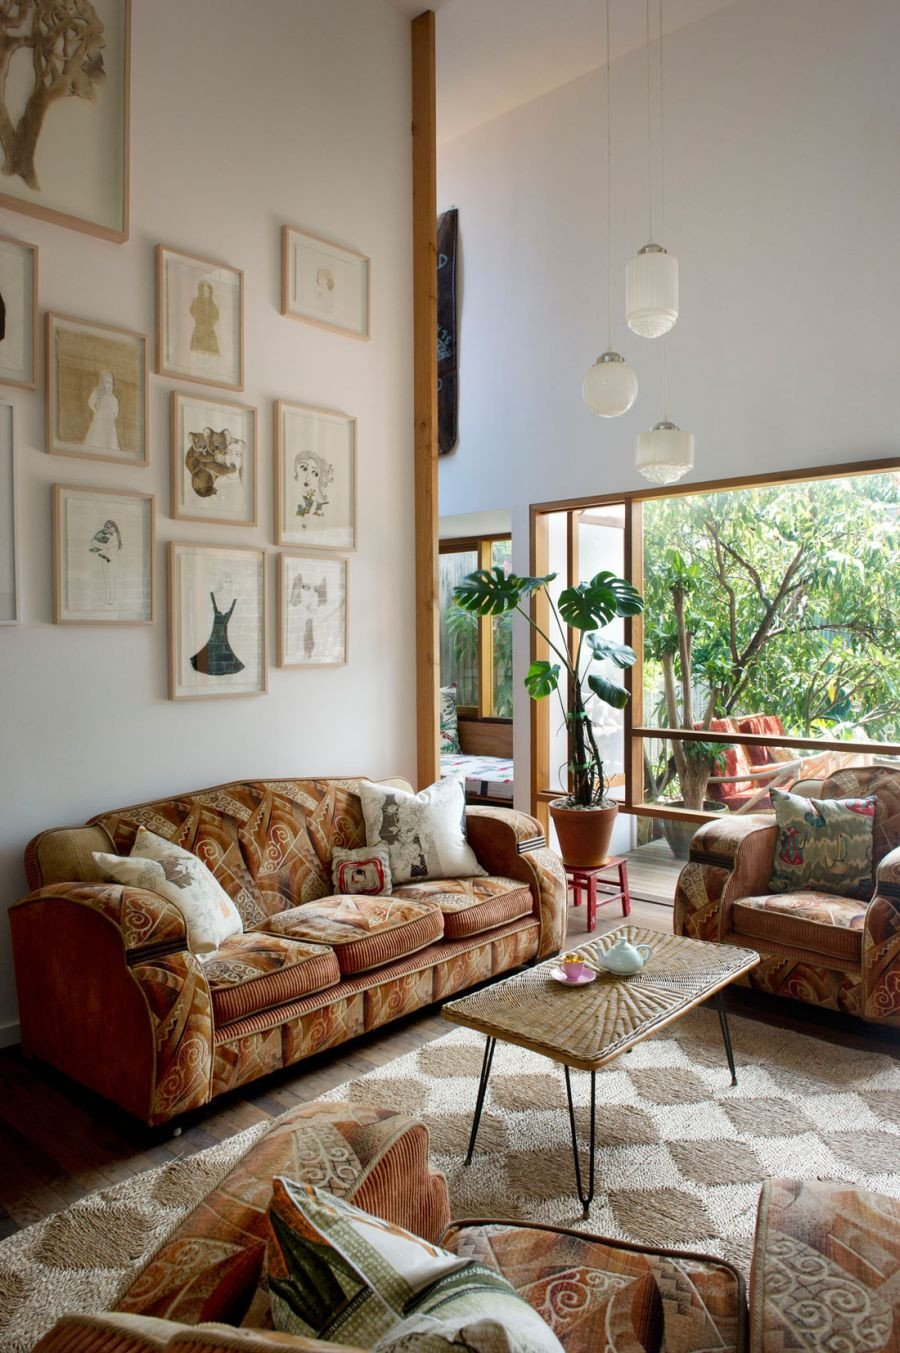 Eclectic Comfortable Living Room Best Of Eclectic Sydney House Presents Colorful and Quirky Interiors